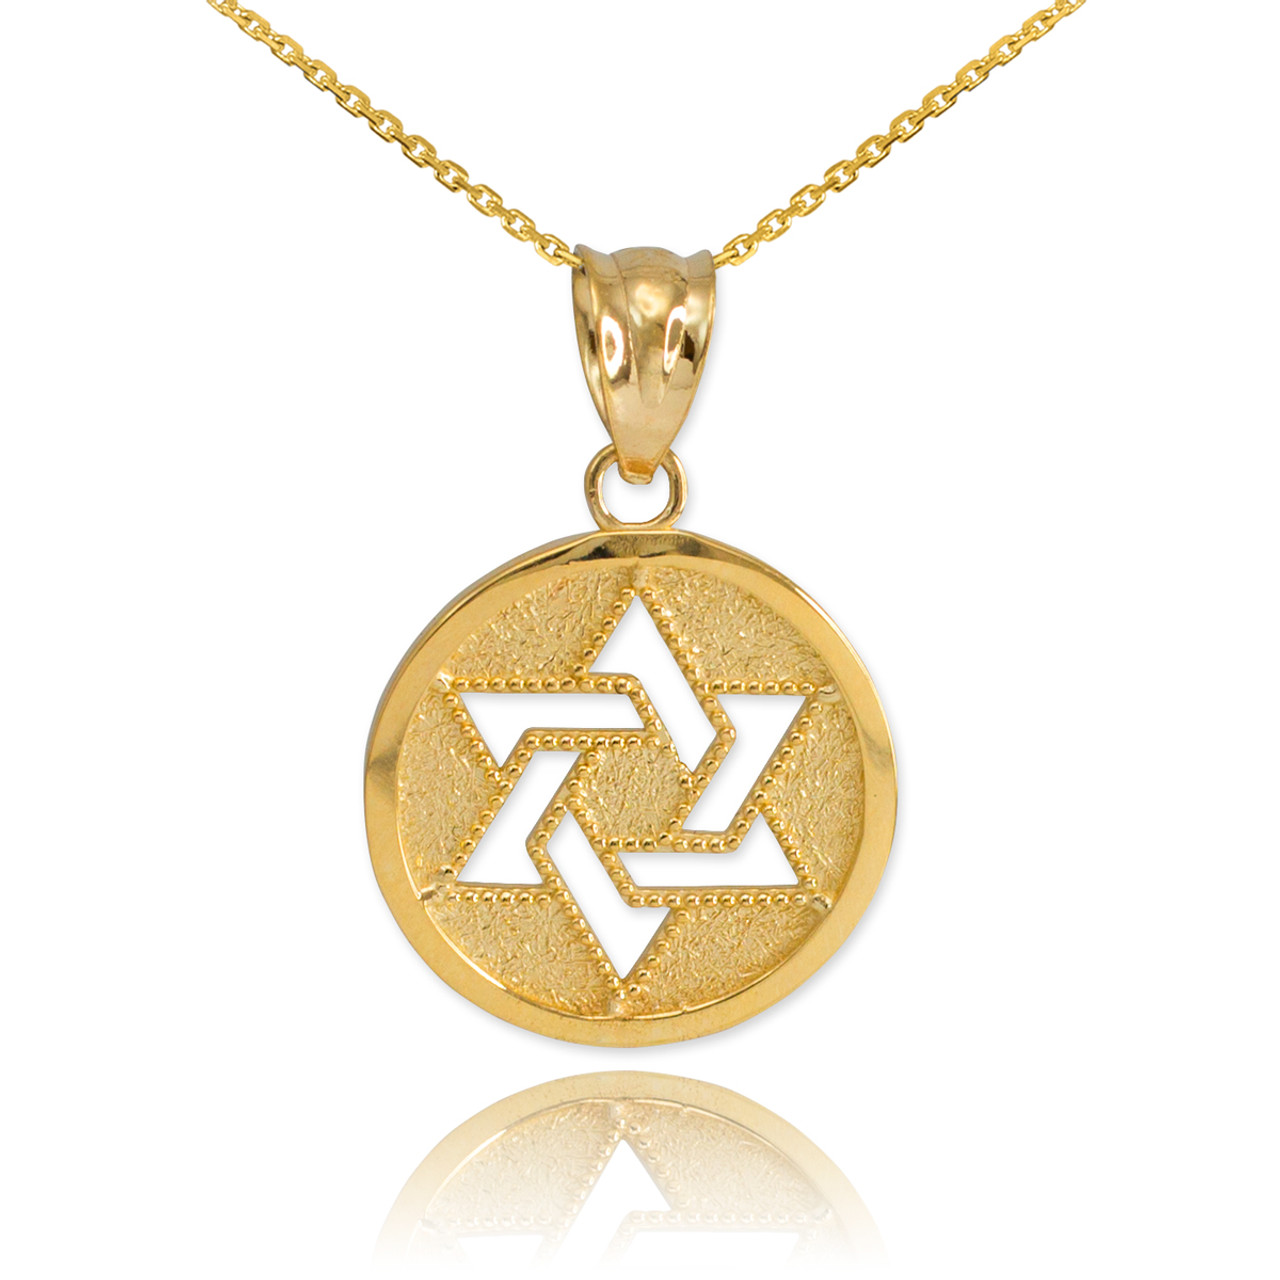 Gold cut out star of david pendant necklace for Star of david jewelry wholesale